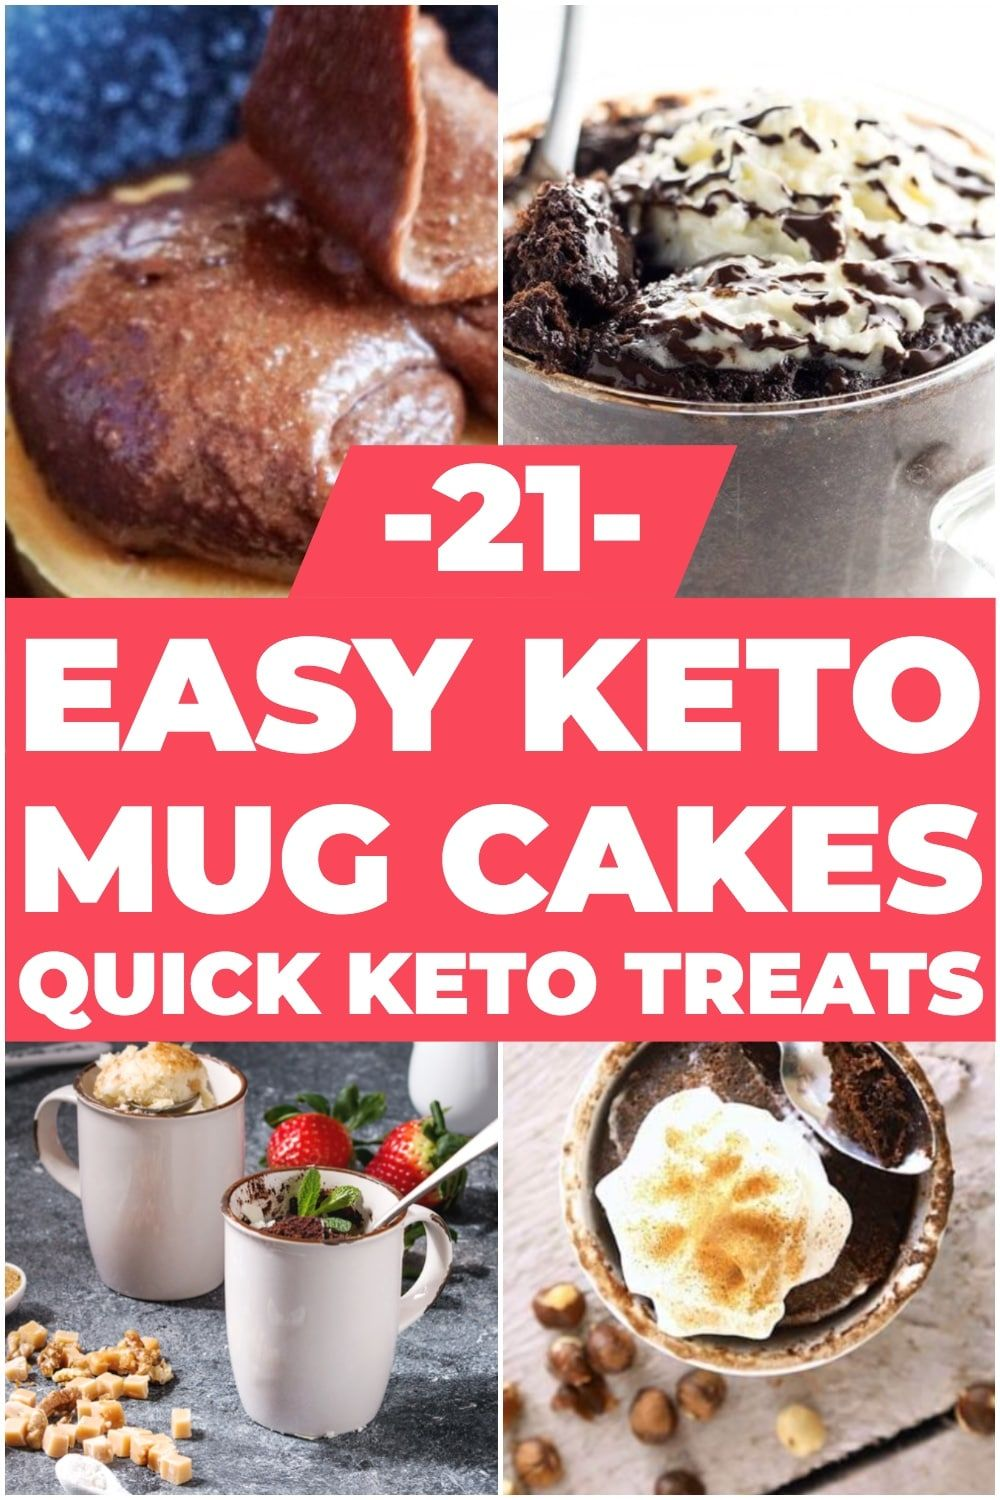 21 Keto Mug Cake Recipes: Low Carb Desserts You Can Make in Minutes